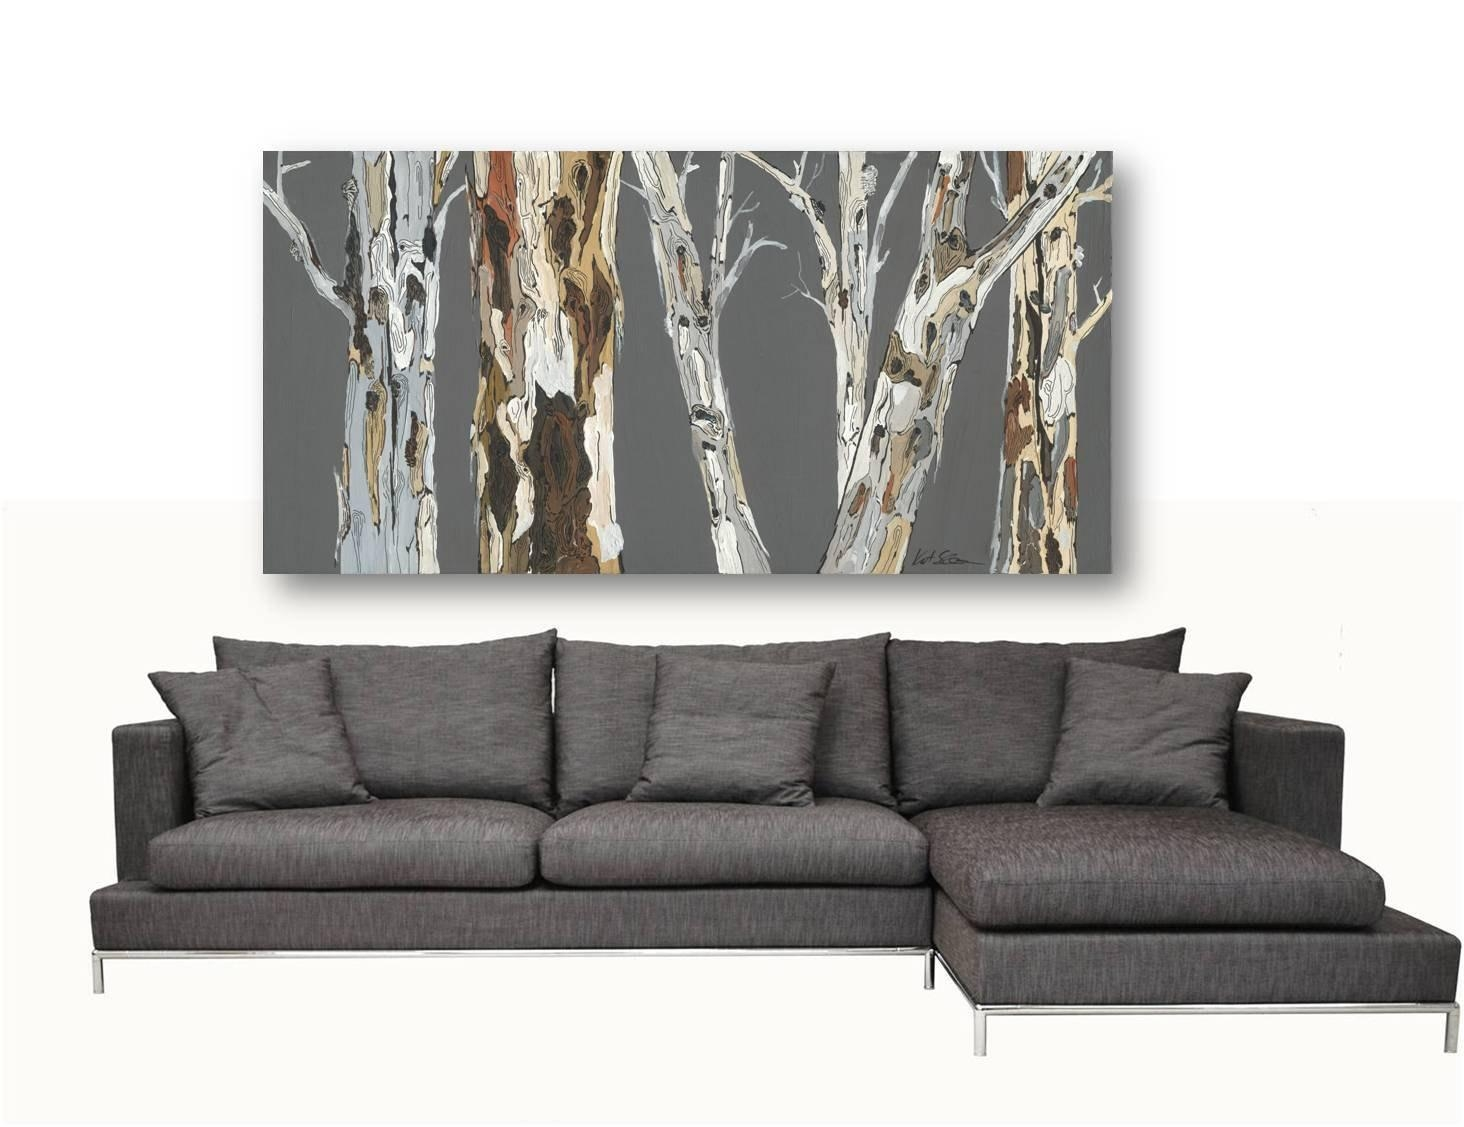 Extra Large Wall Art Print Tree Art Rolled Canvas Pastels Gray Regarding Extra Large Wall Art Prints (View 5 of 20)